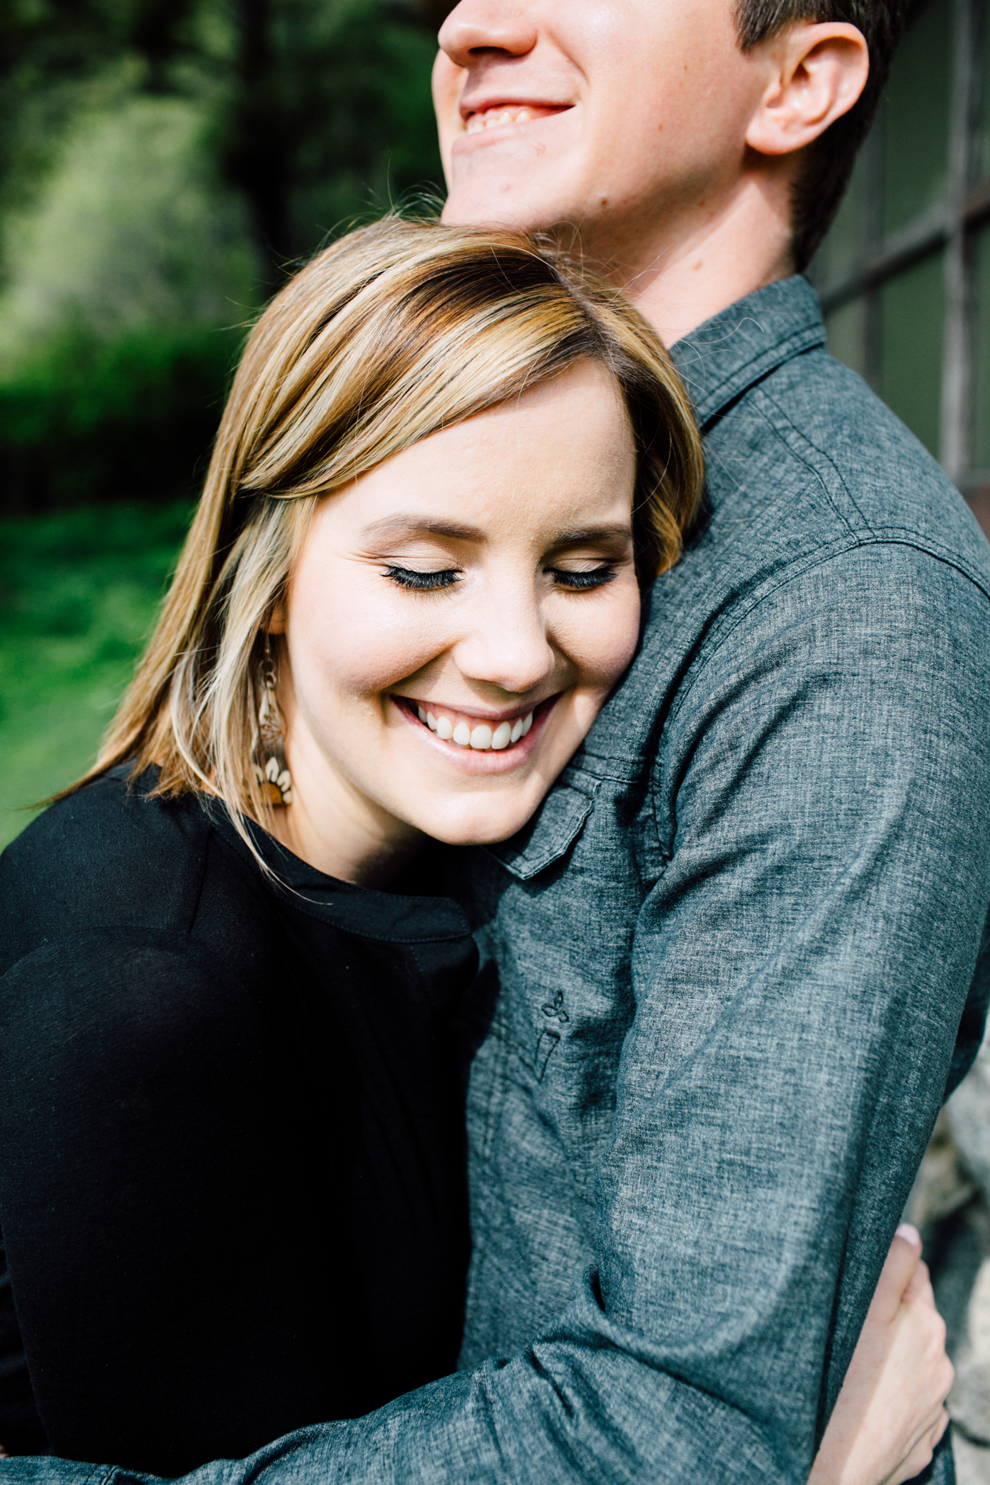 005-bellingham-anacortes-engagement-photographer-bowman-bay-jill-mike.jpg